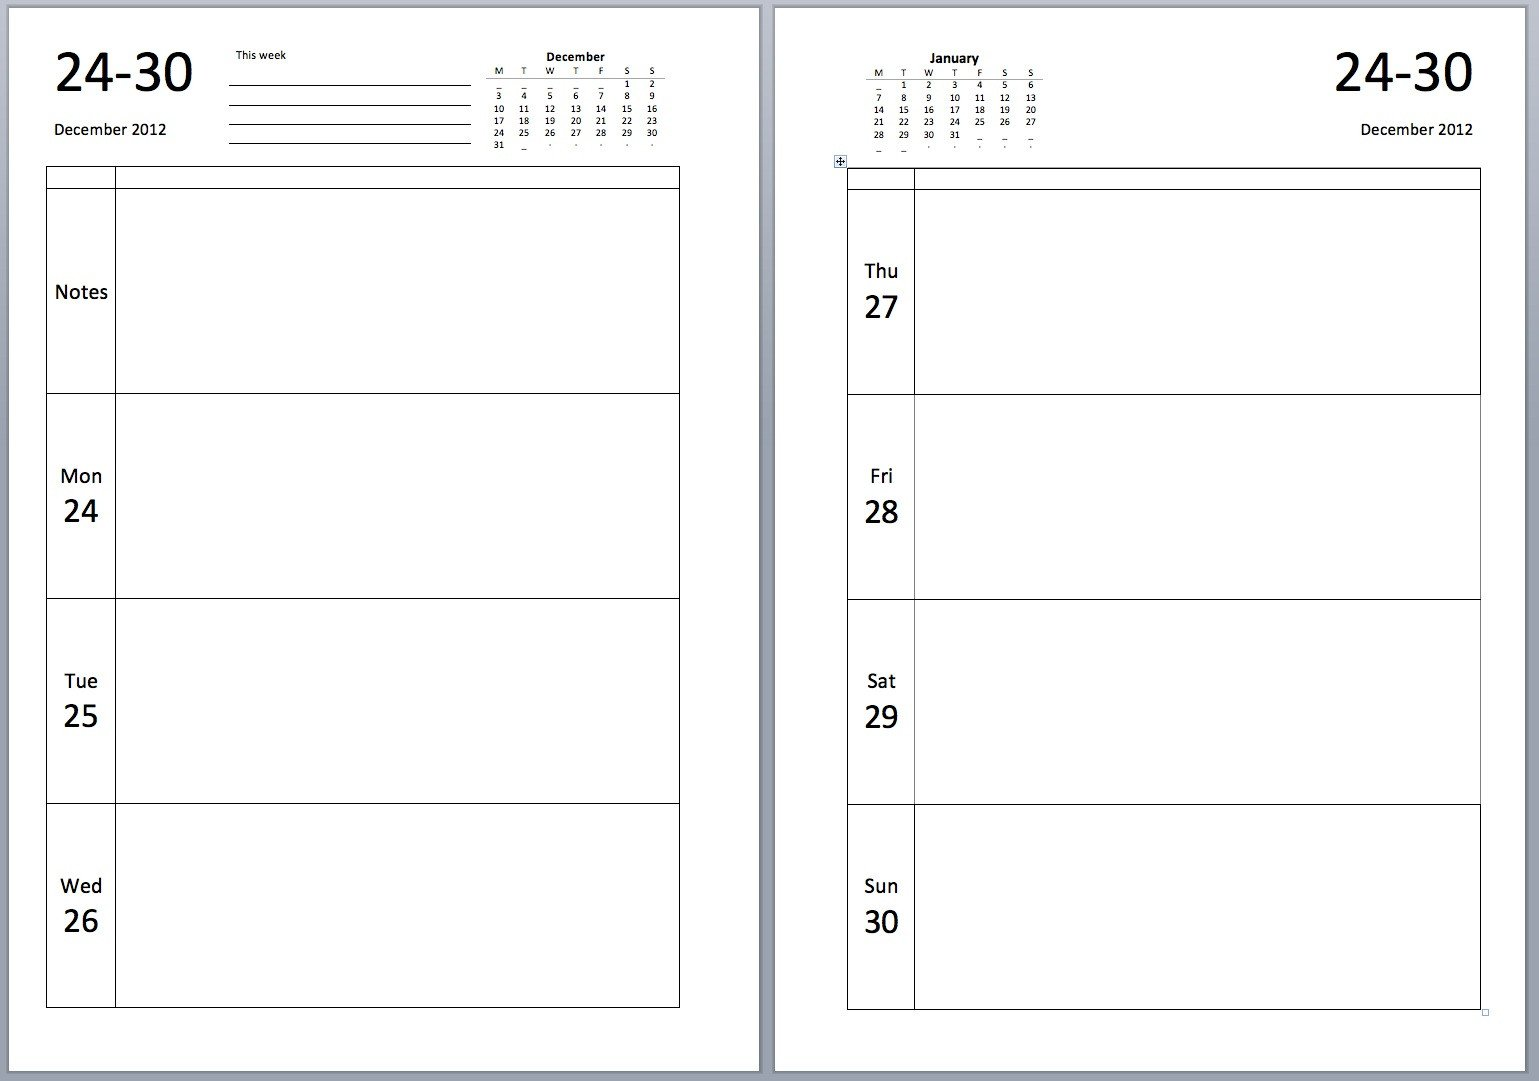 Diary Entry Template Word Philofaxy Download source Files for the New A5 Diary Layouts